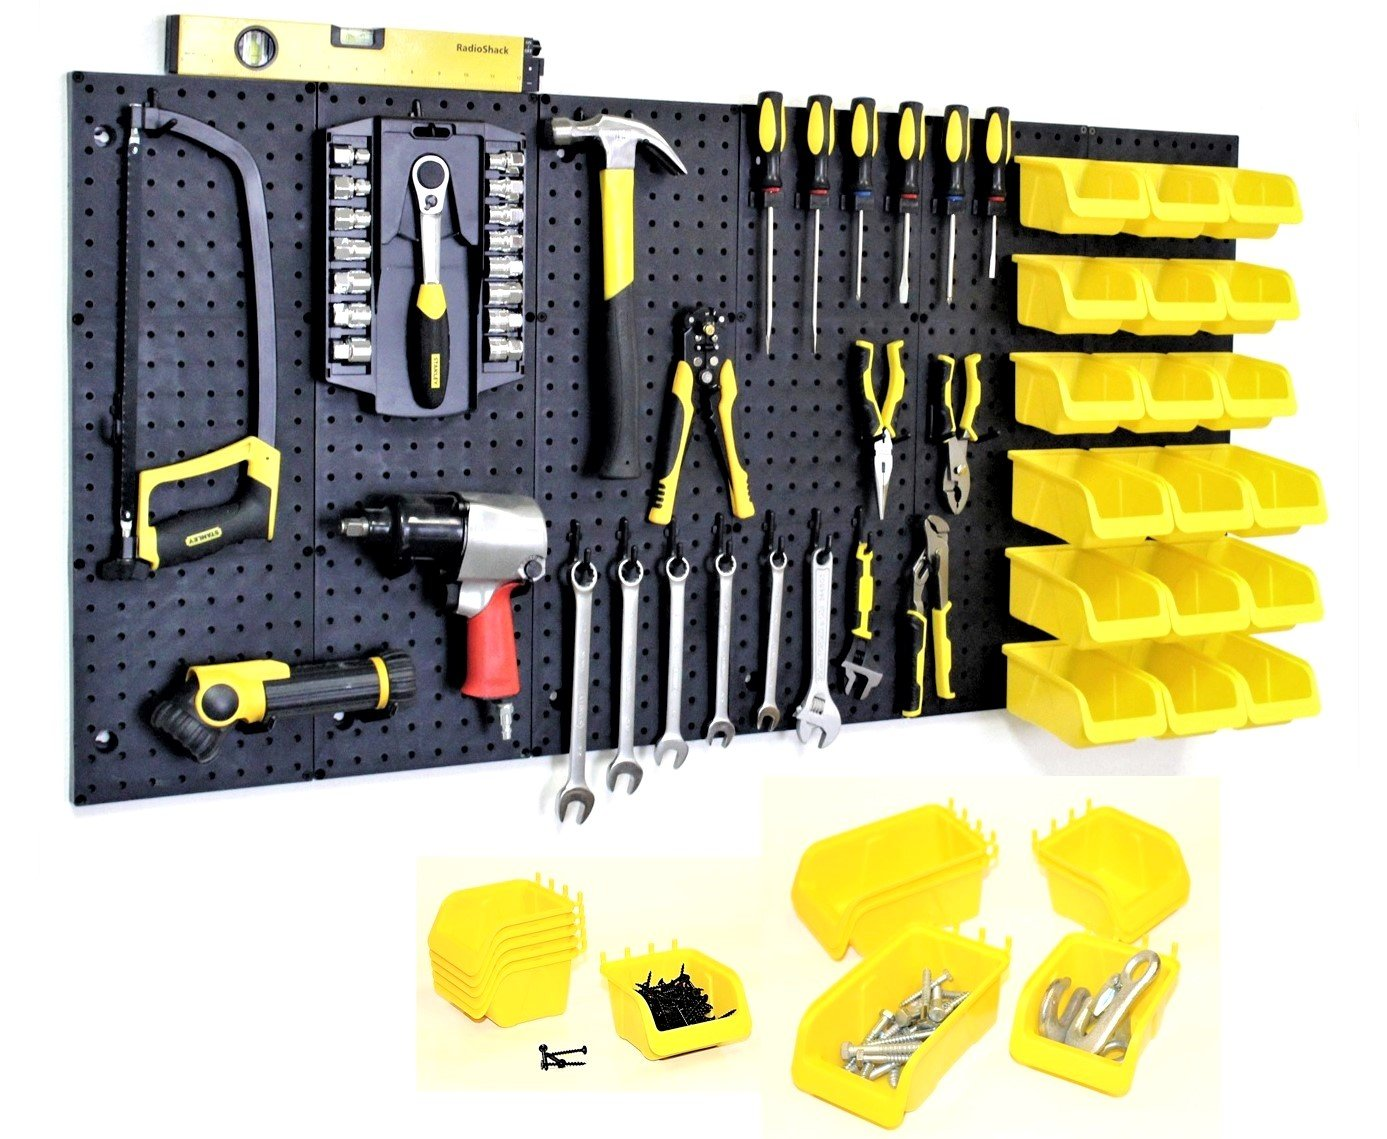 WallPeg 24'' / 80'' Wall Mounted Garage Storage System with Panels, Bins, Pegboard Hooks and Panel Set - Tool Parts and Craft Organizer